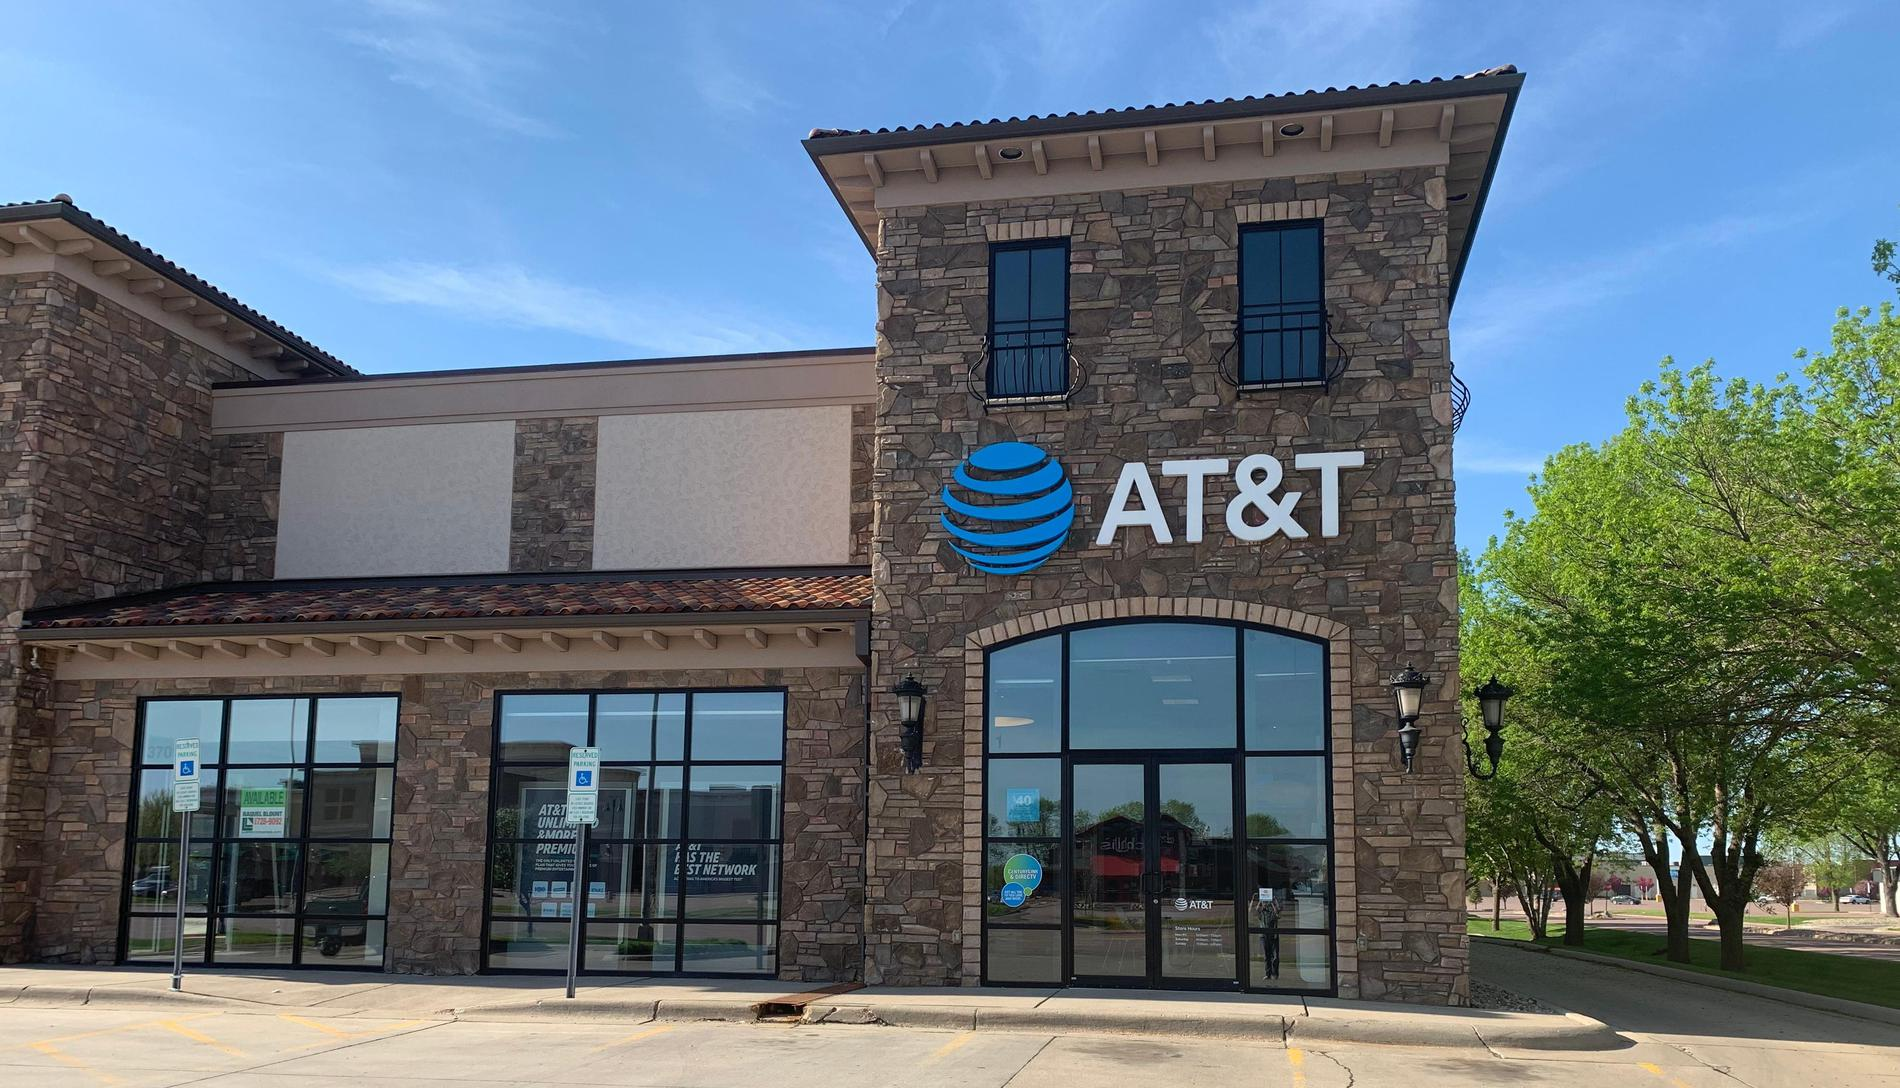 3d27498069 AT&T Store - Emporium - Sioux Falls, SD